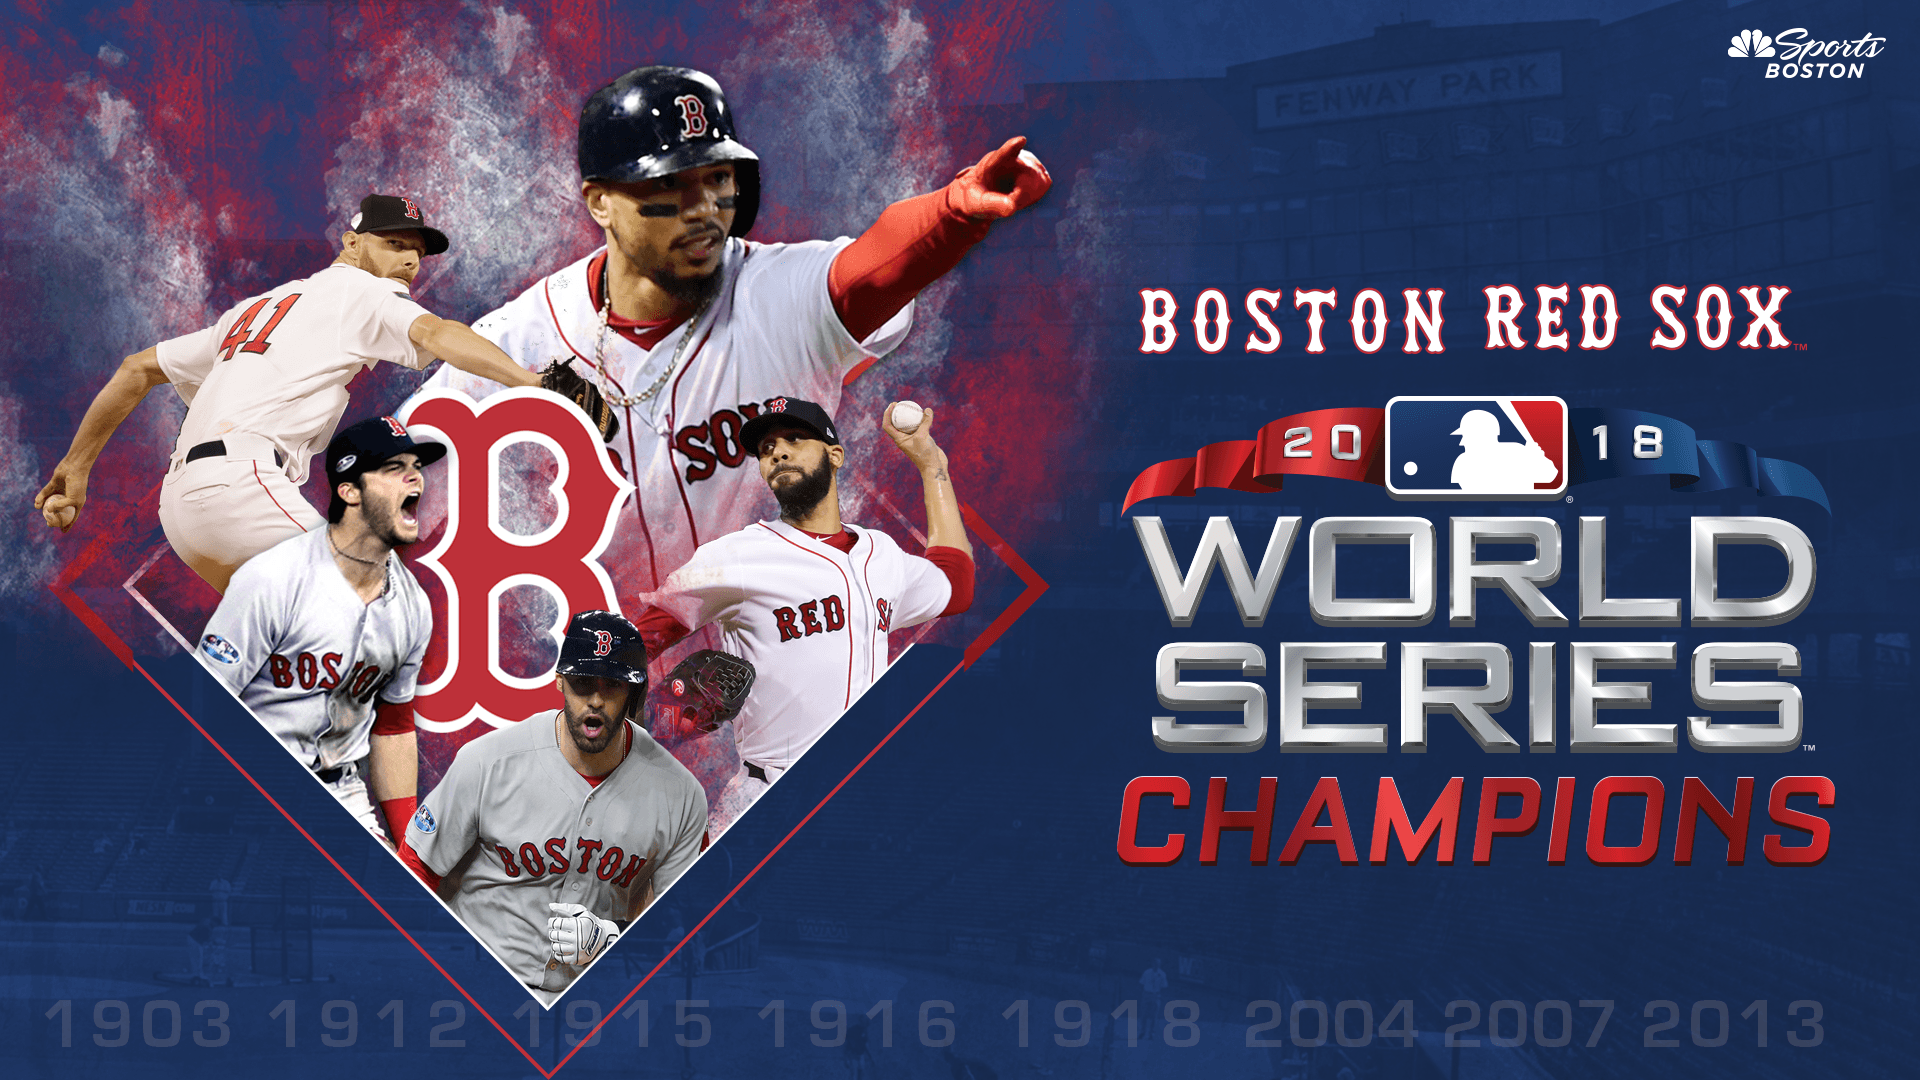 Boston Red Sox 2019 Wallpapers - Wallpaper Cave